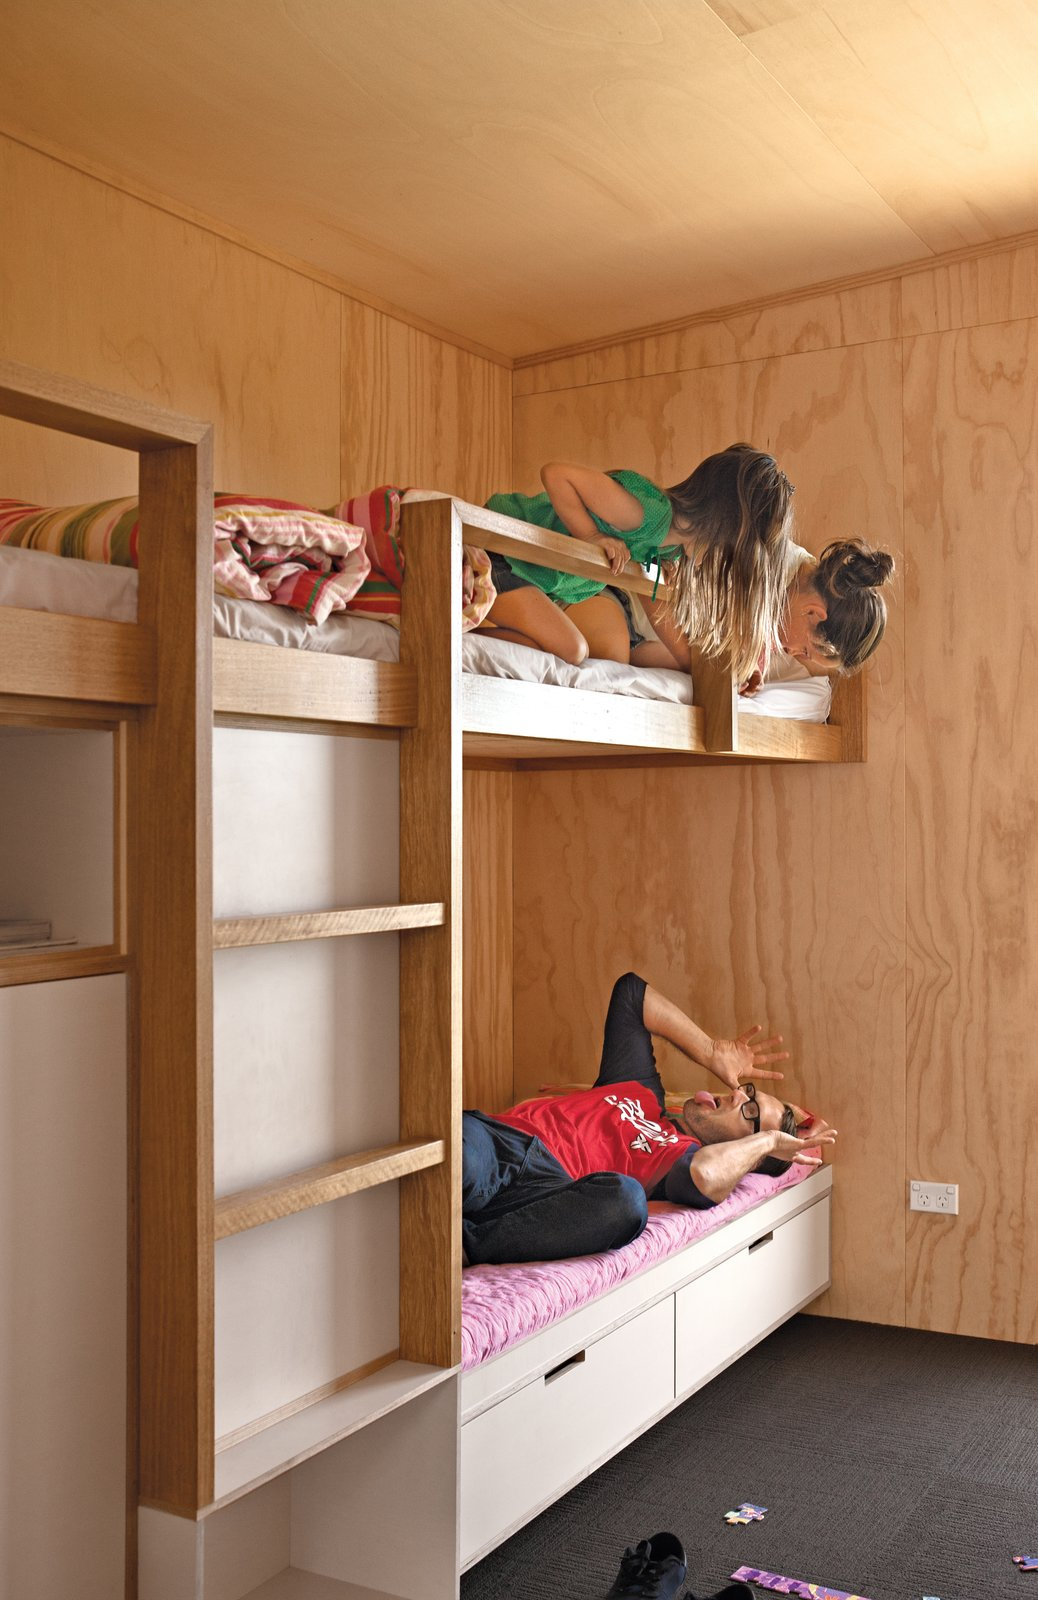 Architect Dave Strachan and the Unitec students designed and built the living room sofa and bunk beds. The carpet squares are by Interface.  Photo 7 of 7 in A Compact Prefab Vacation Home